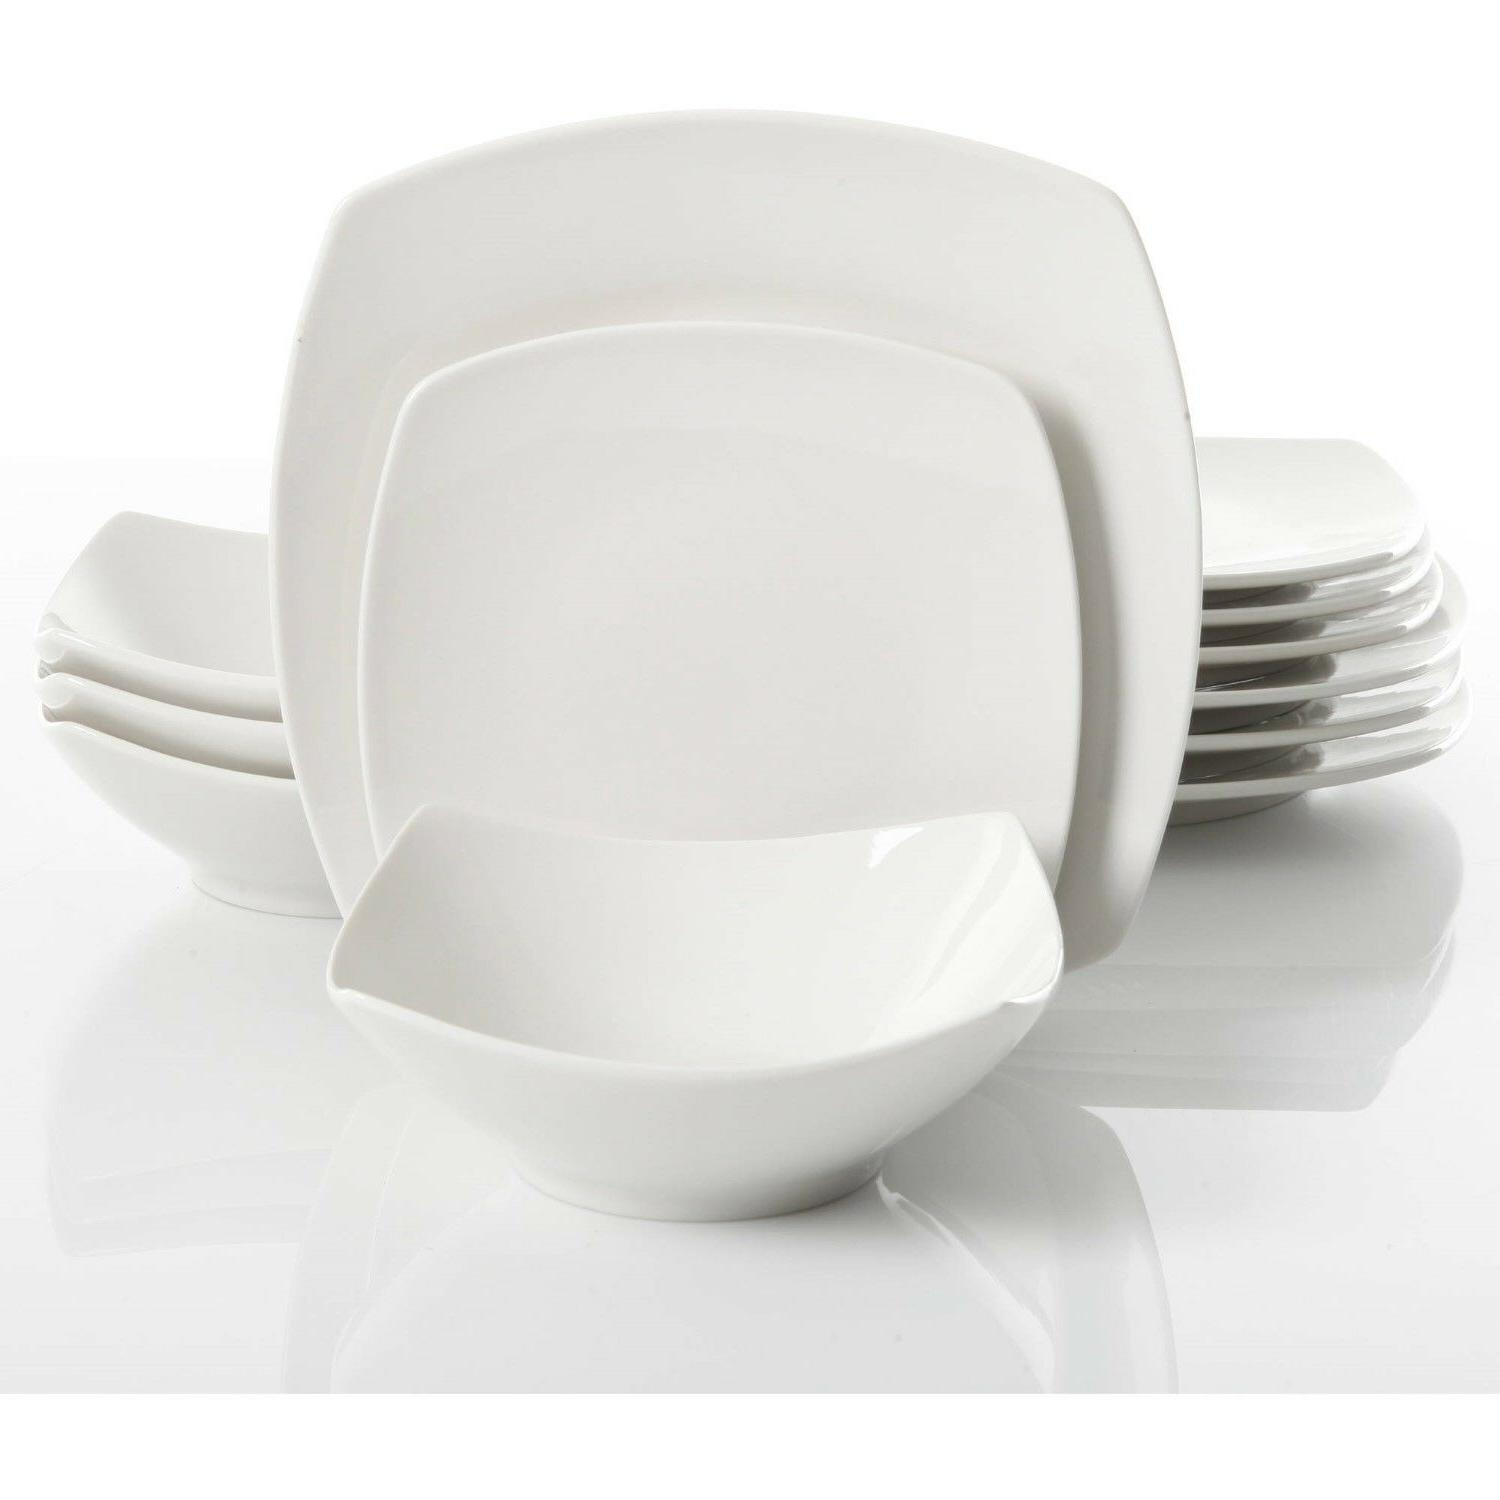 12-Piece Dinner Bowls Ceramic